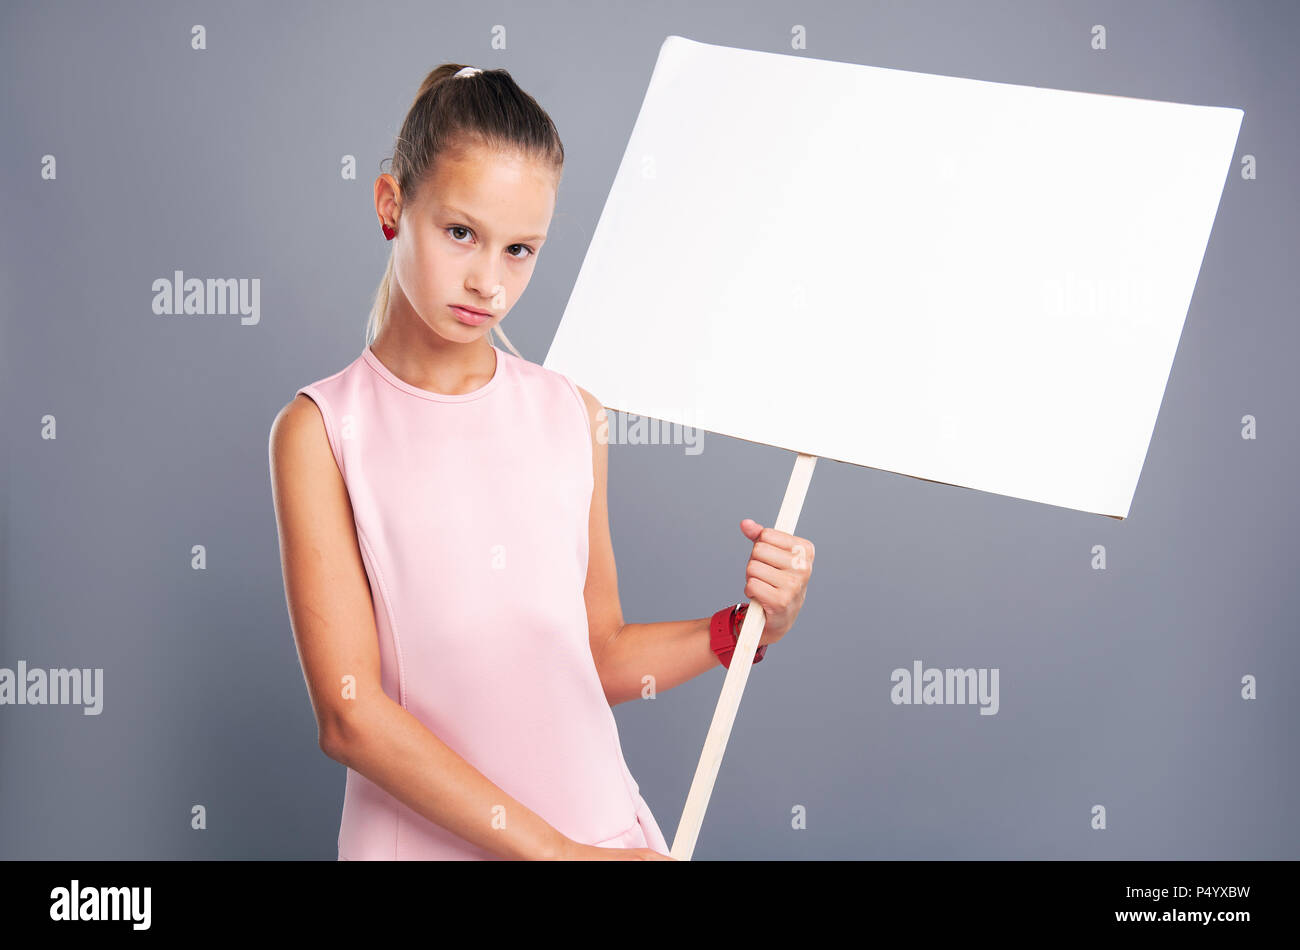 Serious teenage girl holding empty banner - Stock Image